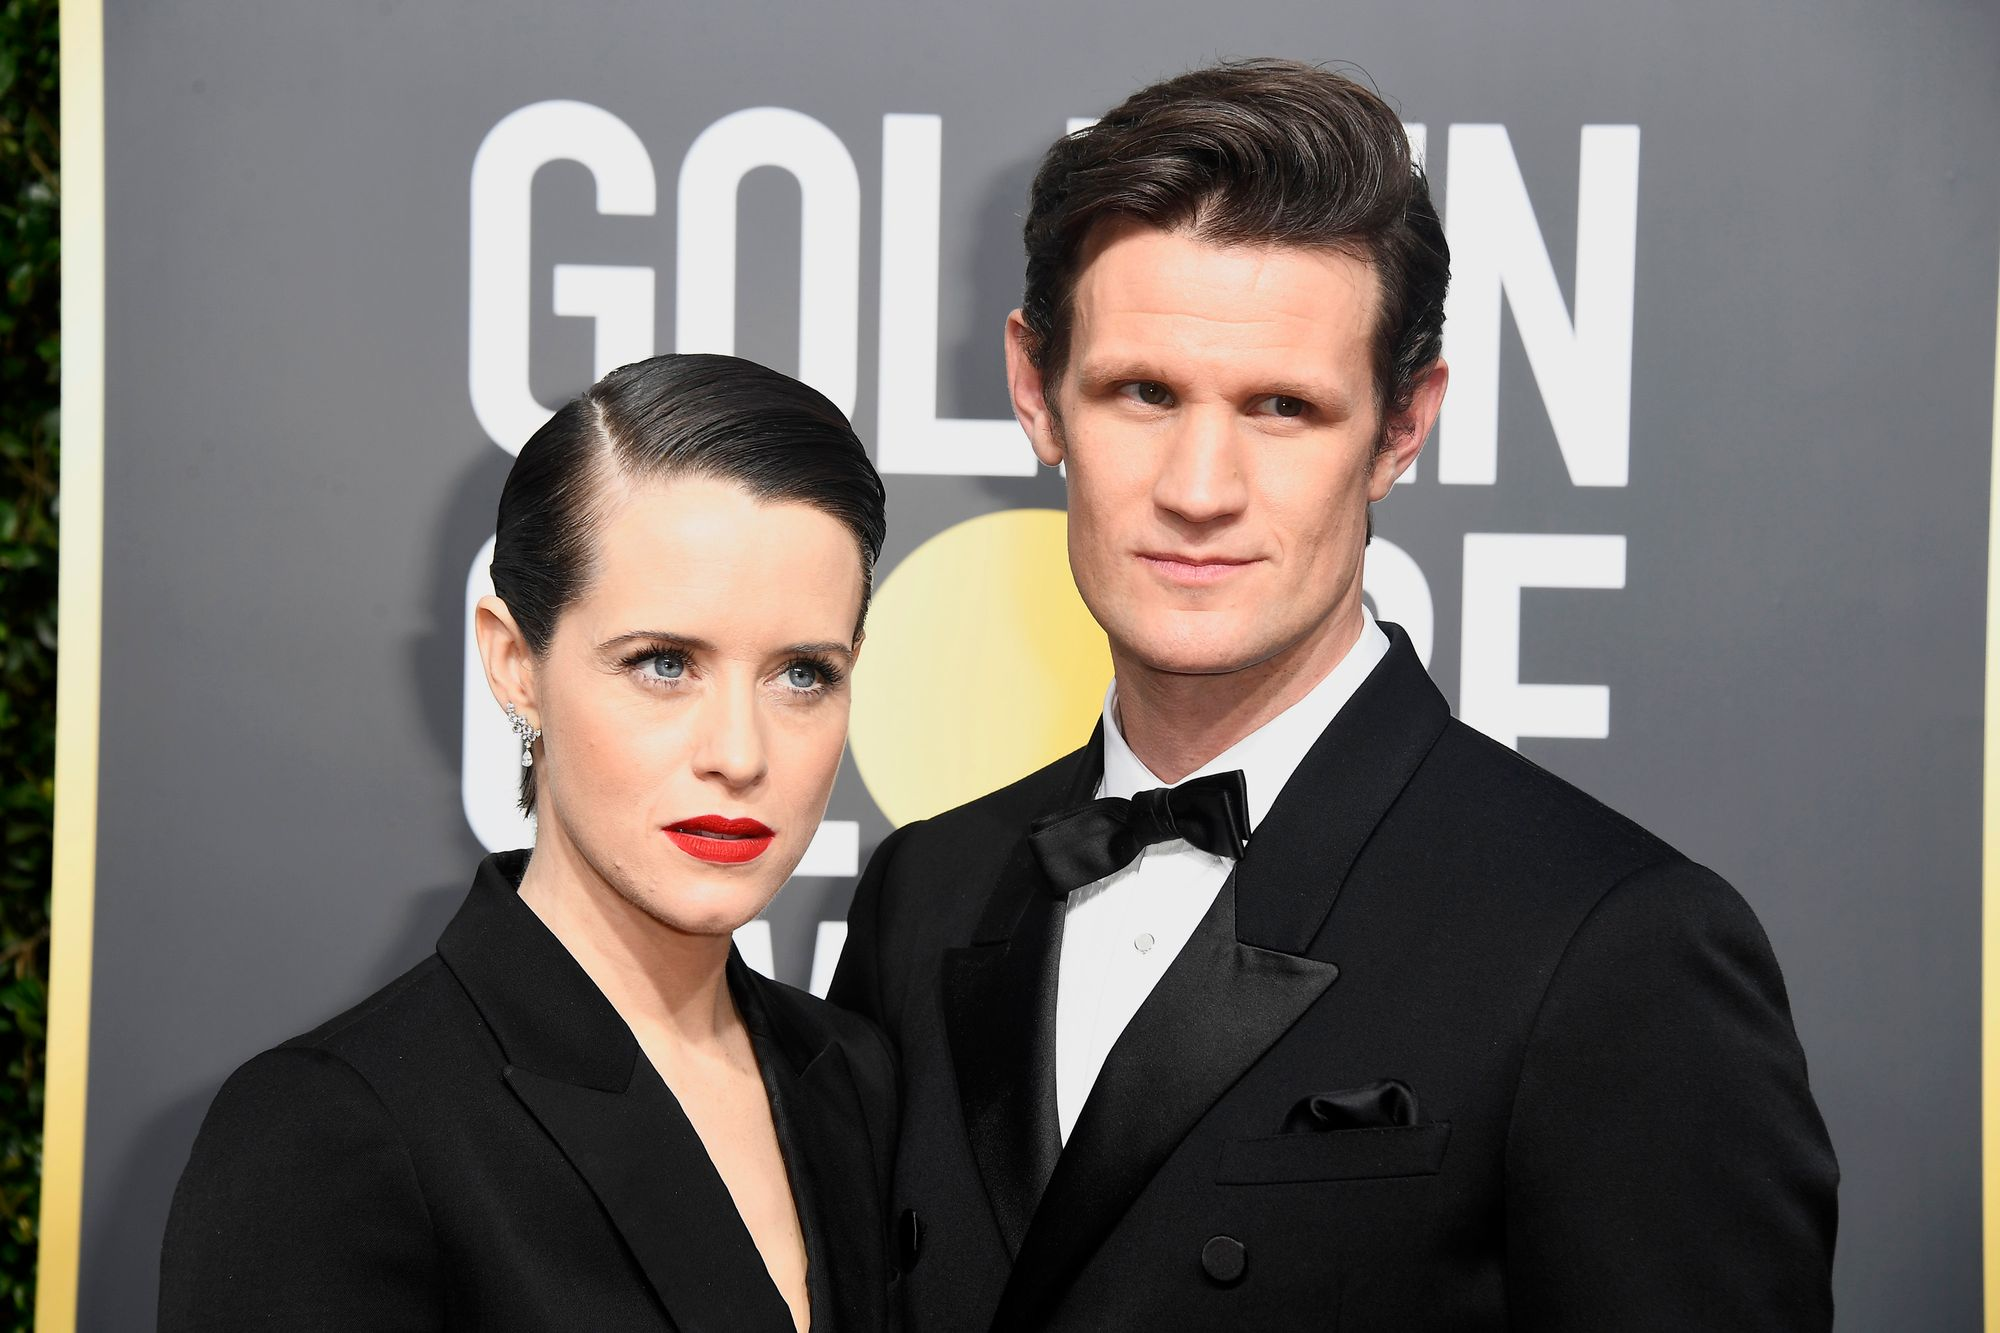 L'actrice Claire Foy et Matt Smith aux Golden Globe Awards en 2018.